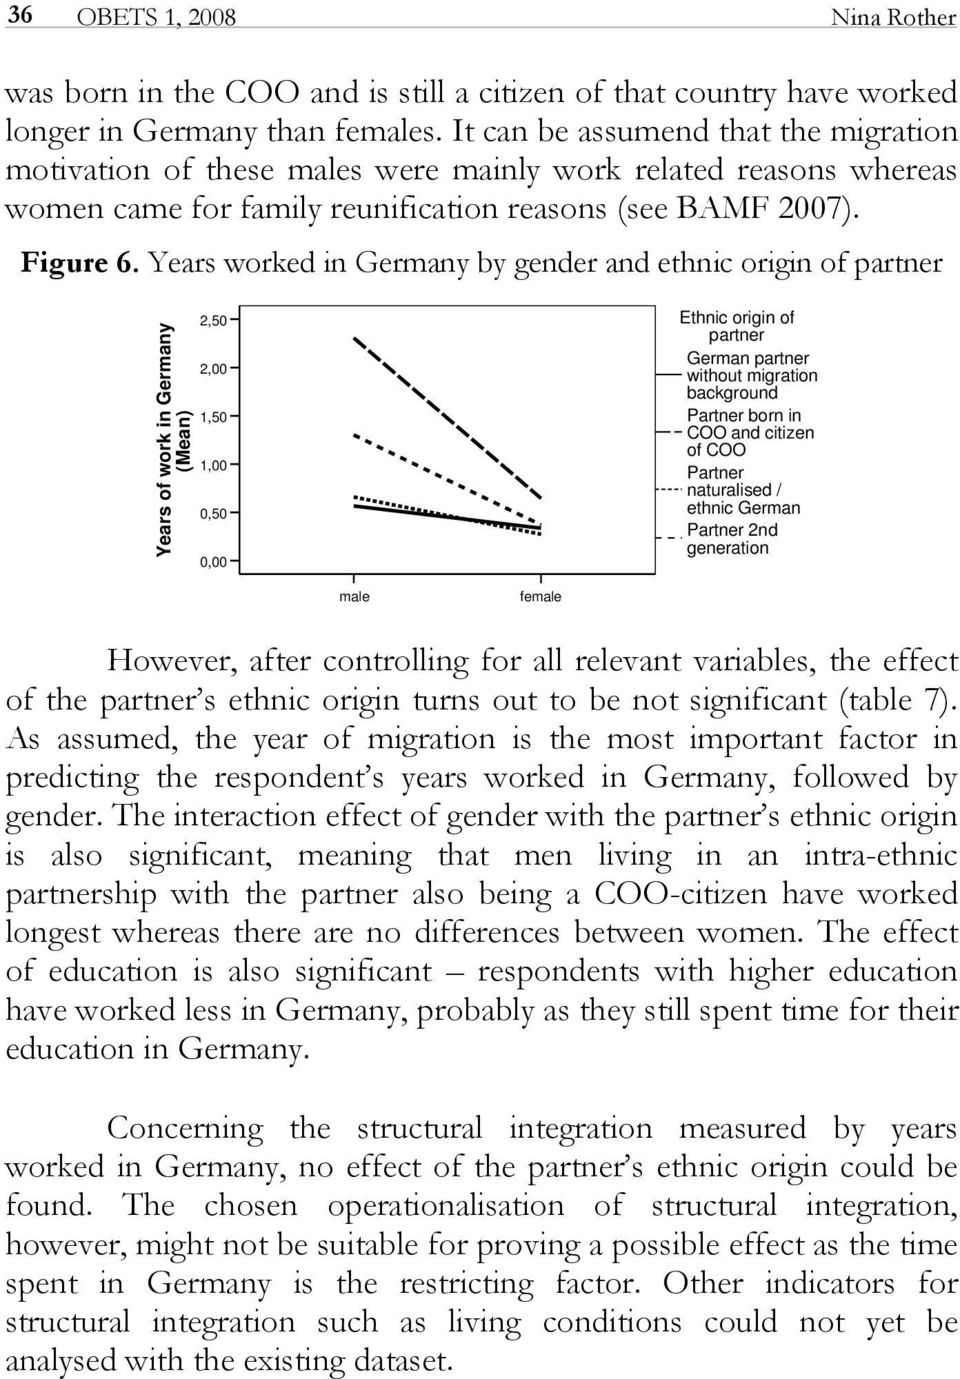 Years worked in Germany by gender and ethnic origin of partner Years of work in Germany (Mean) 2,50 2,00 1,50 1,00 0,50 0,00 Ethnic origin of partner German partner without migration background